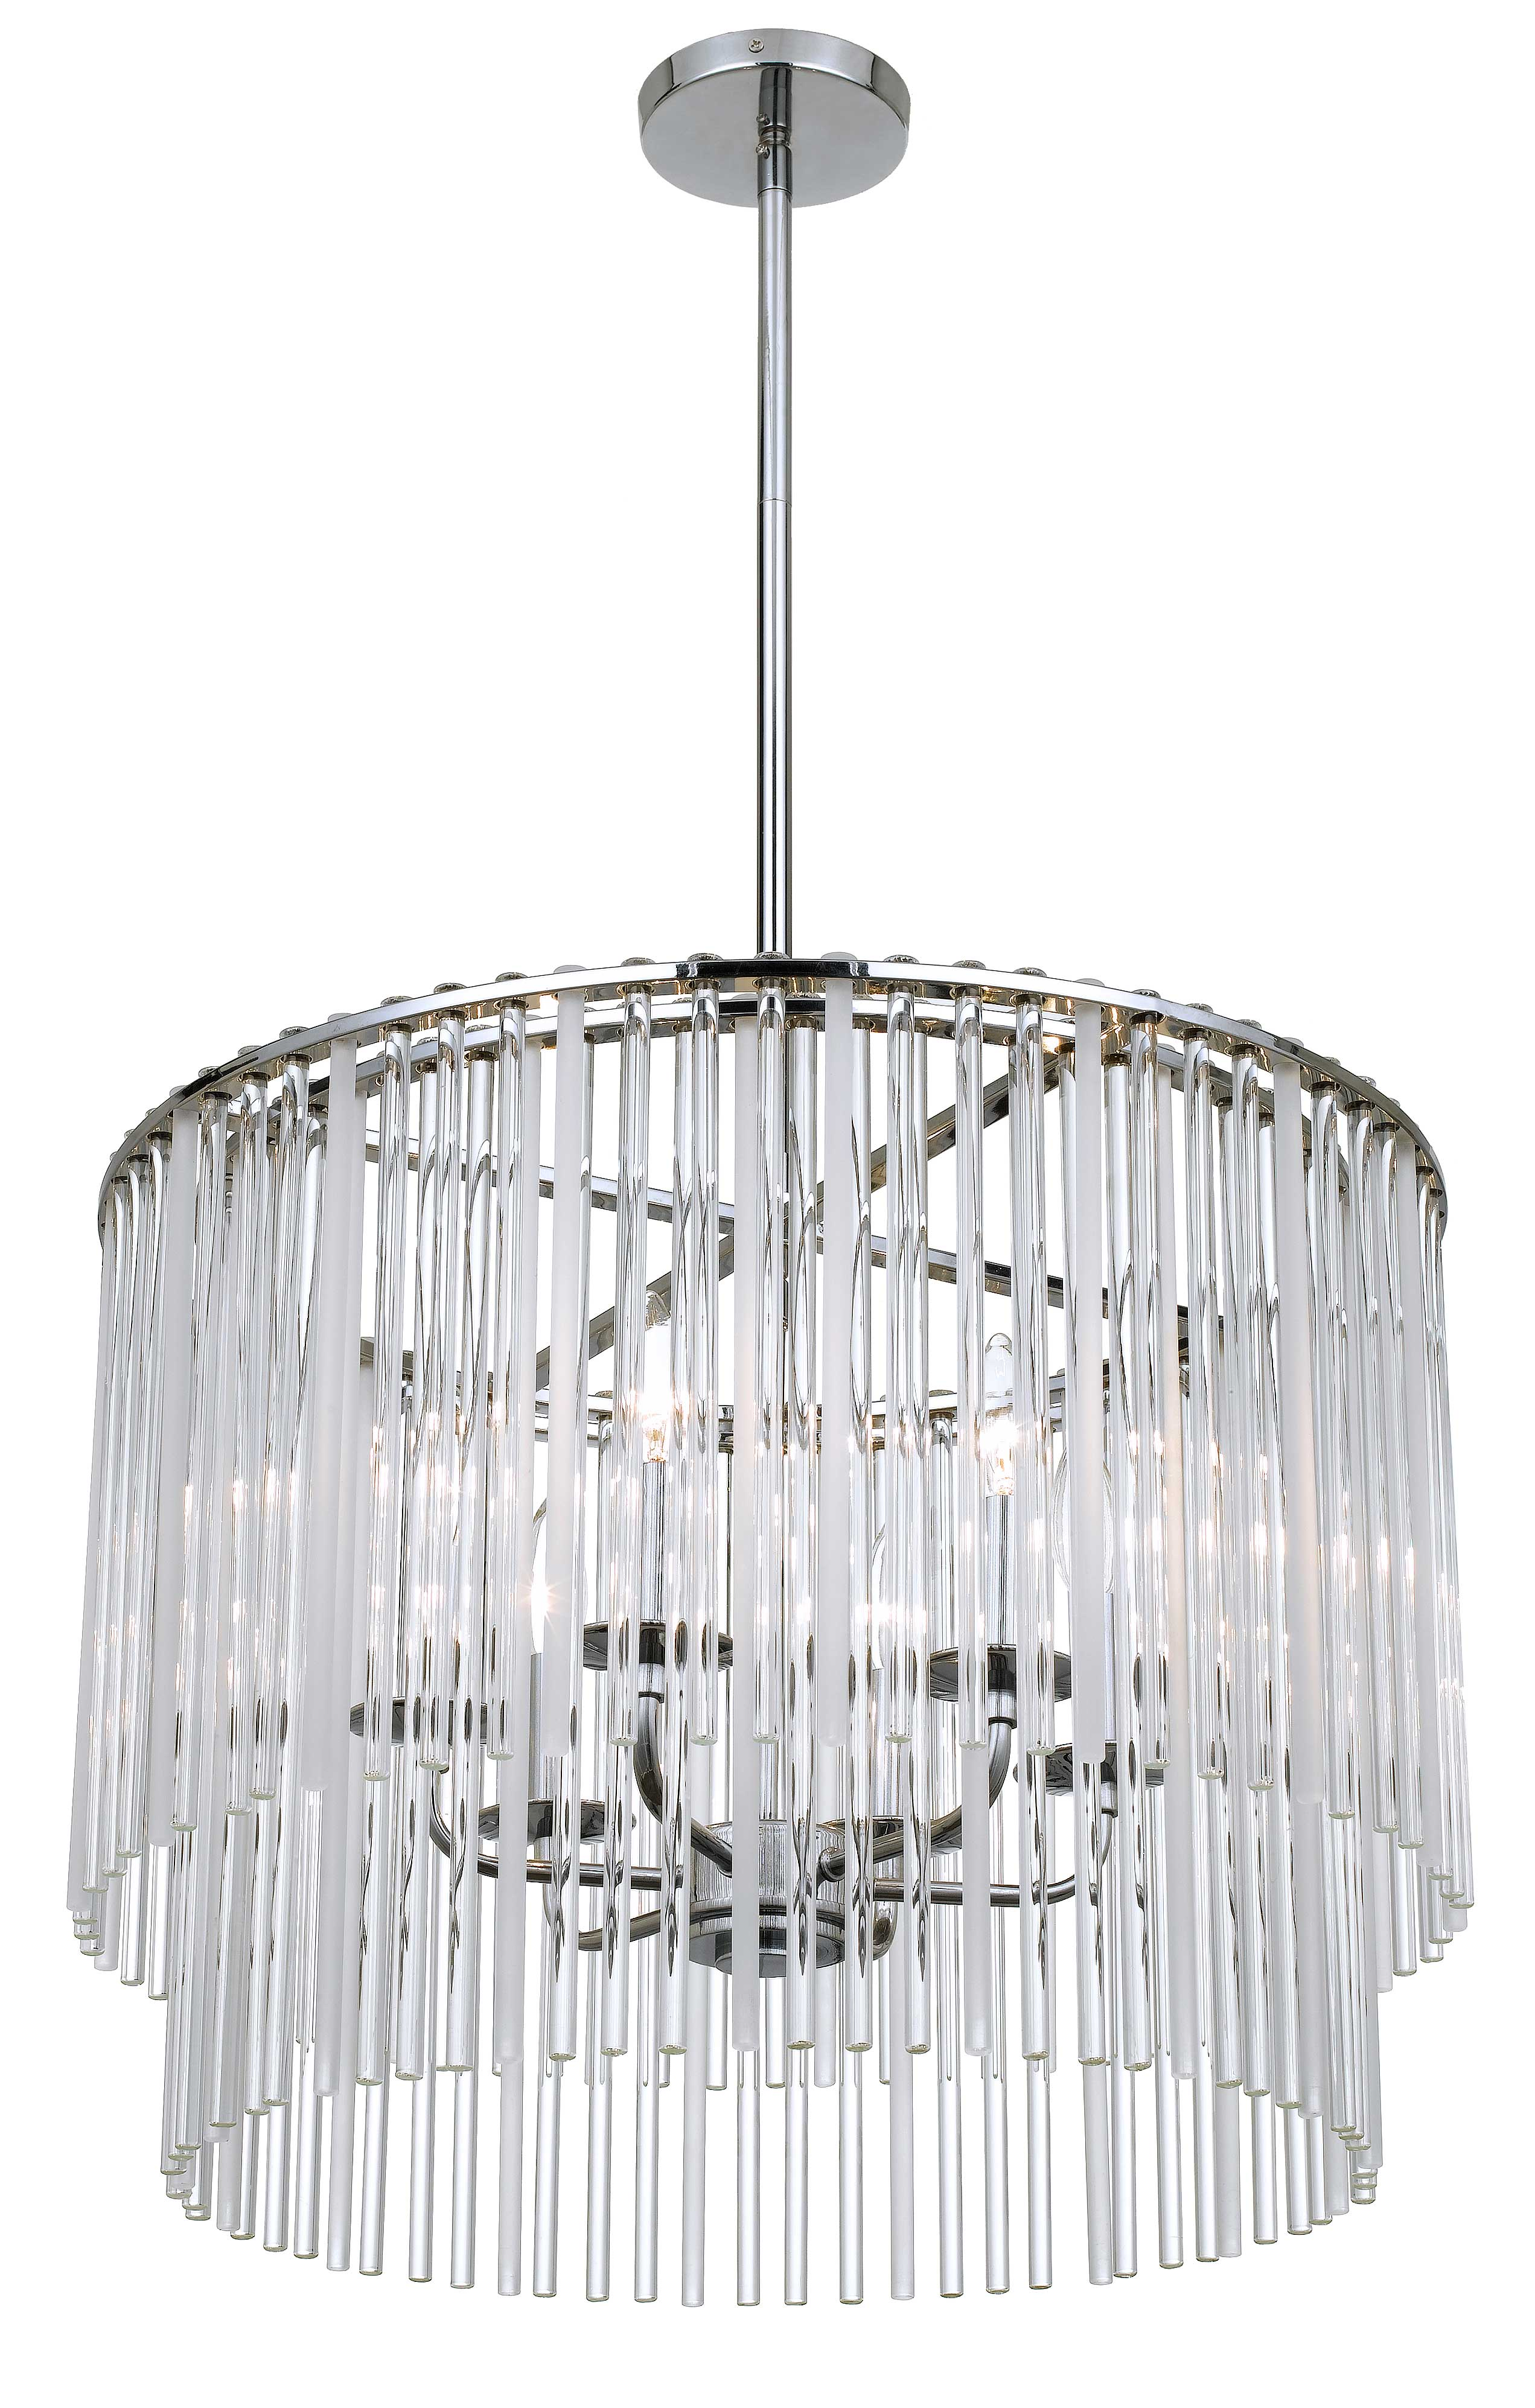 Charlottesville wine and country living blog home dcor these lighting fixtures like the crystomara bleeker chandelier below can be used to brighten your living room add a glow to your spa bath and illuminate arubaitofo Gallery